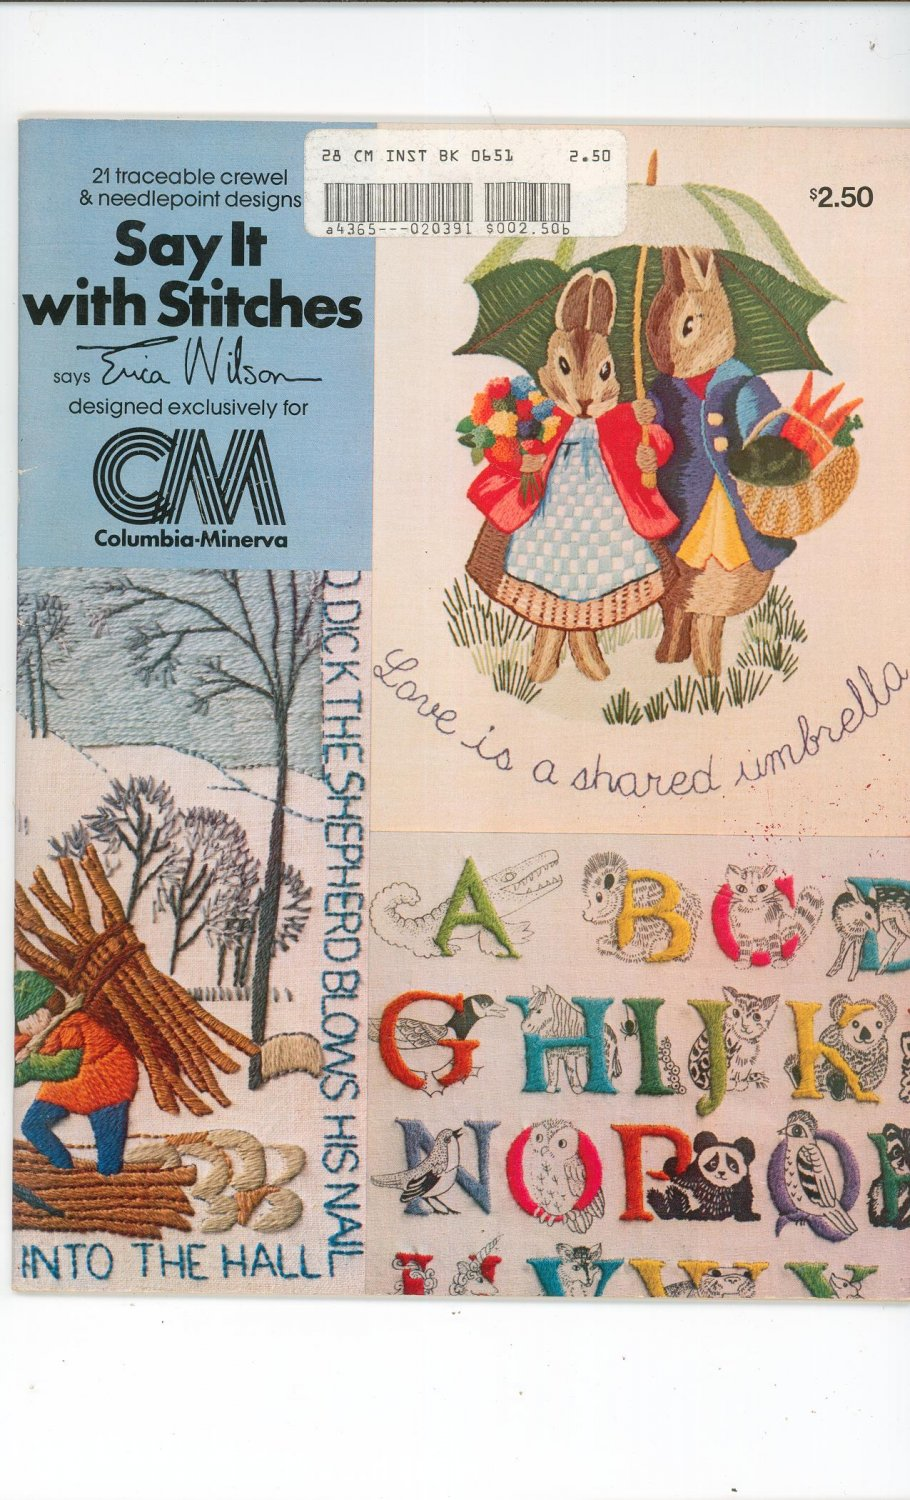 Vintage Say It With Stitches By Erica Wilson 1977 Crewel & Needlepoint